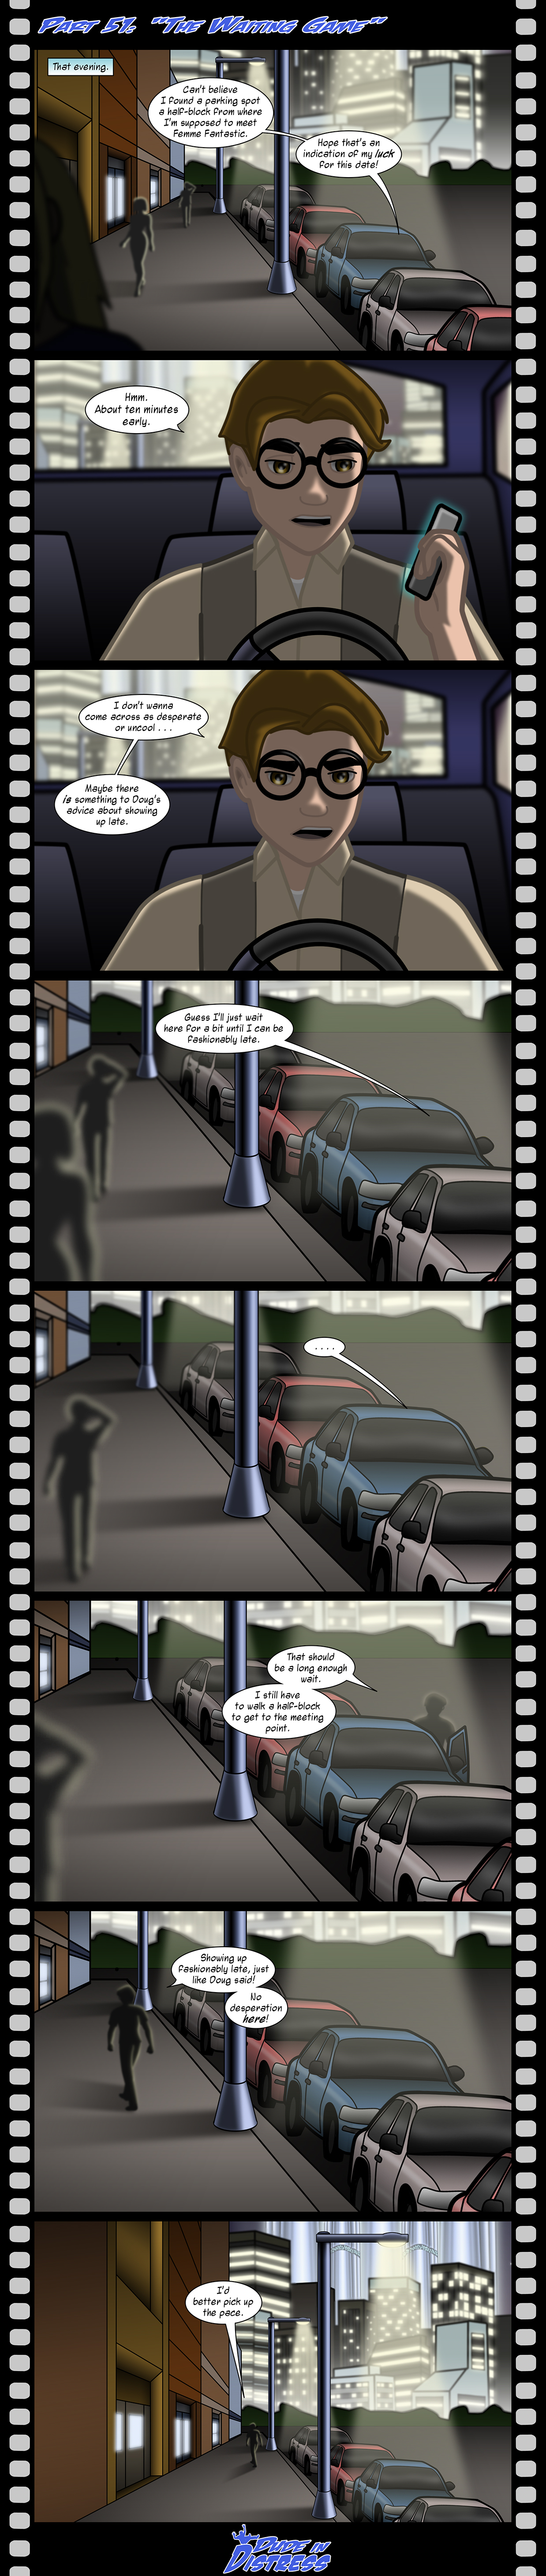 Dude in Distress Strip 51